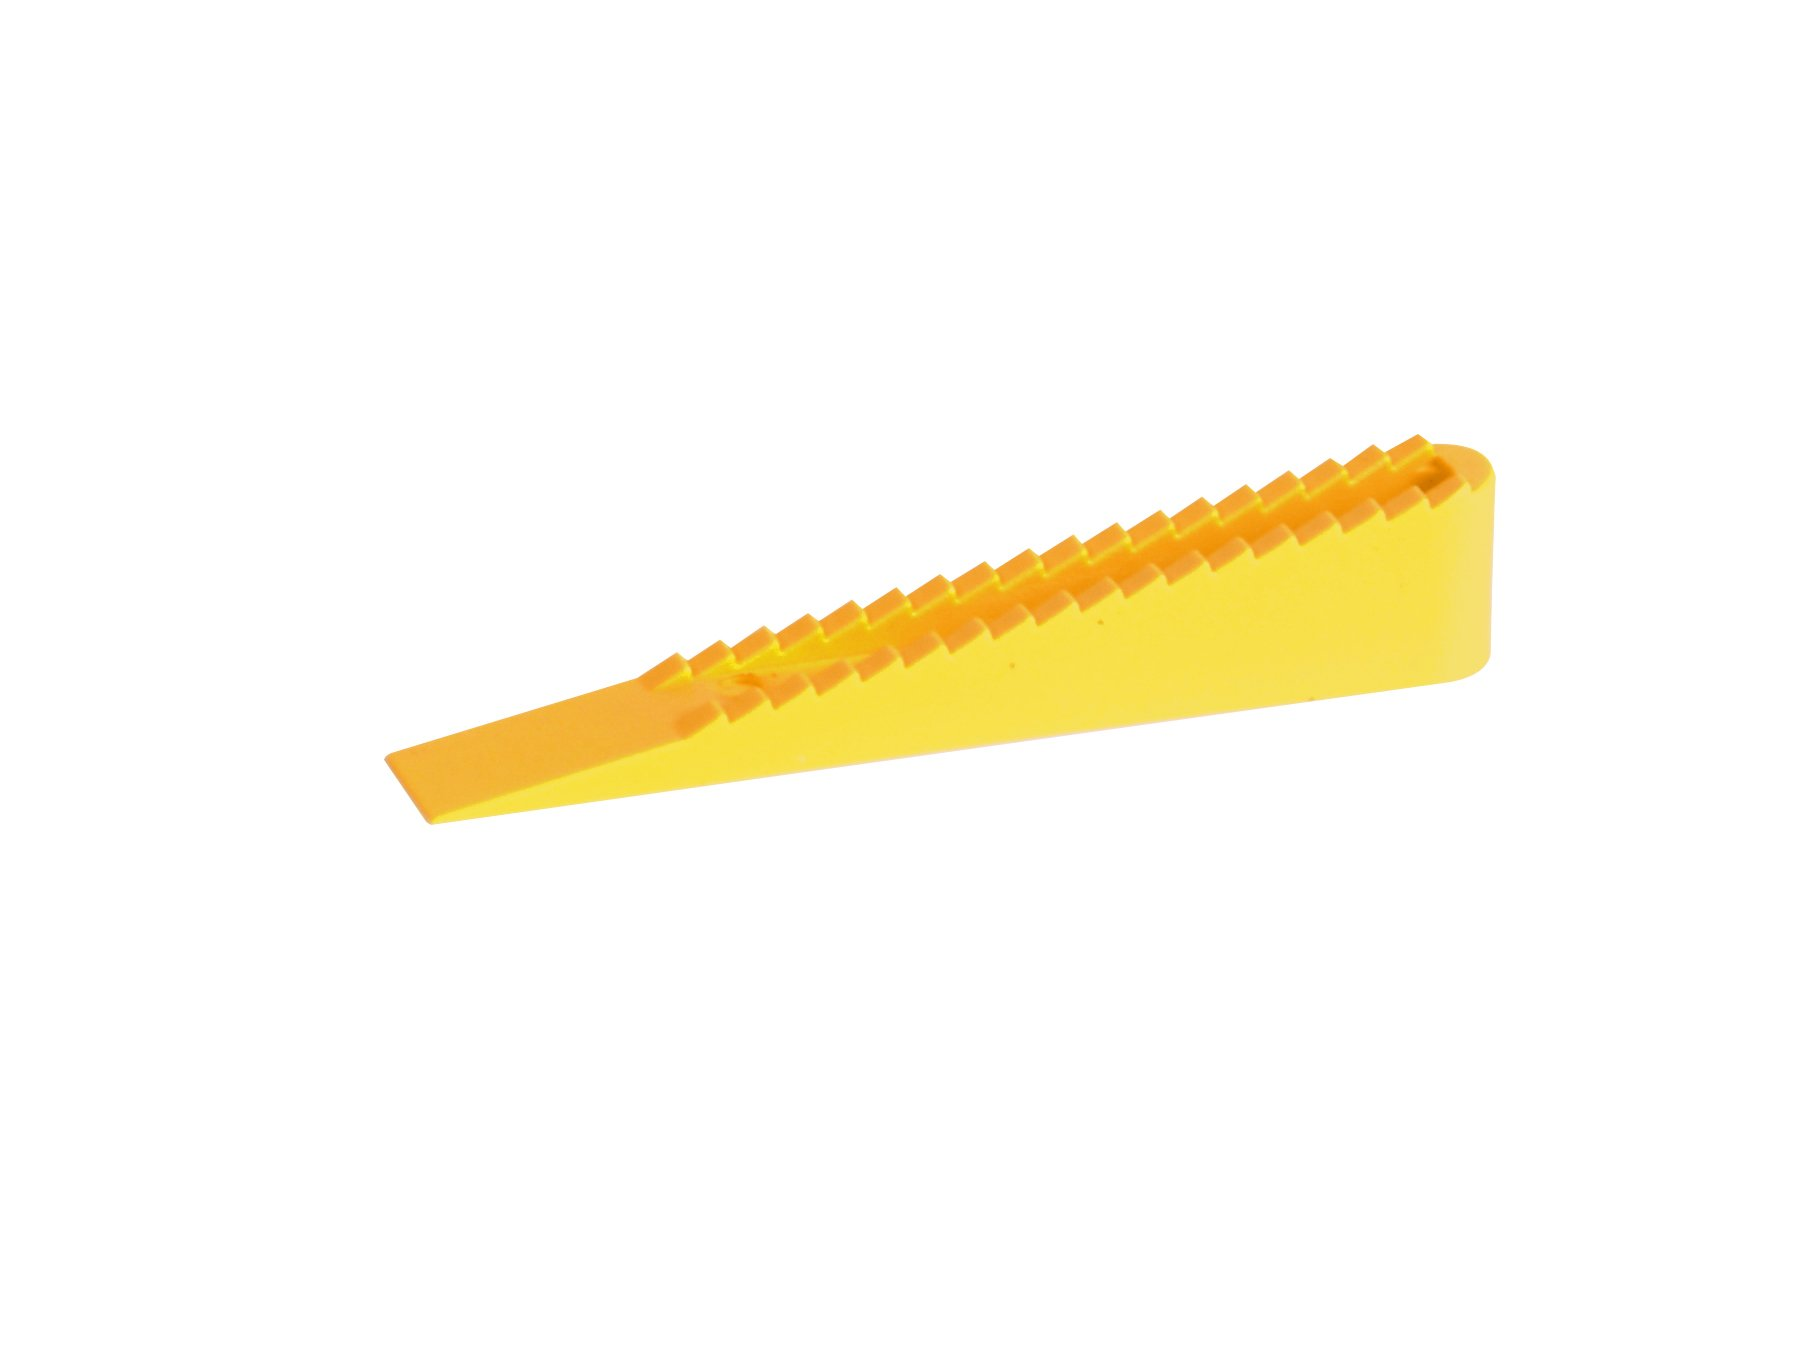 QEP 99726Q LASH Tile Leveling, Aligning and Spacer Wedges, Part B, 96-Pack